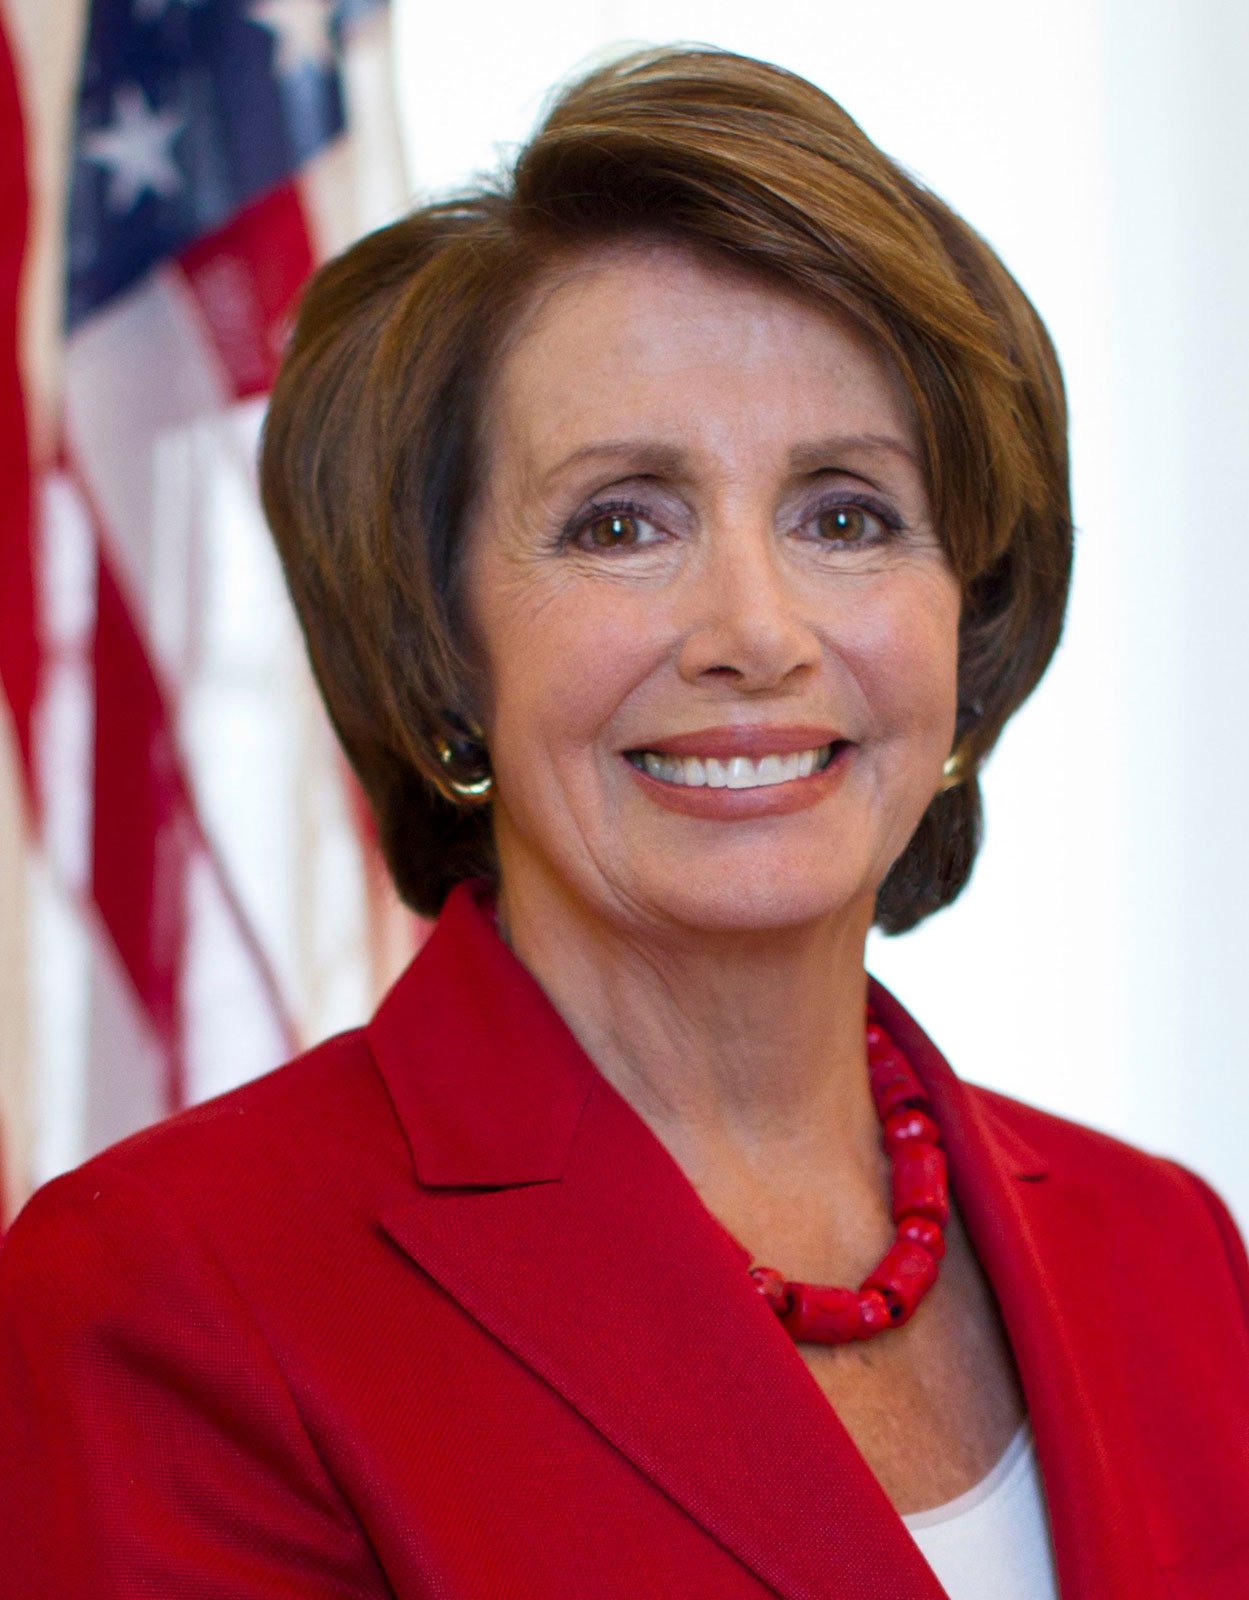 Pelosi to proceed with impeachment legislation against Trump in House to protect 'our Democracy'